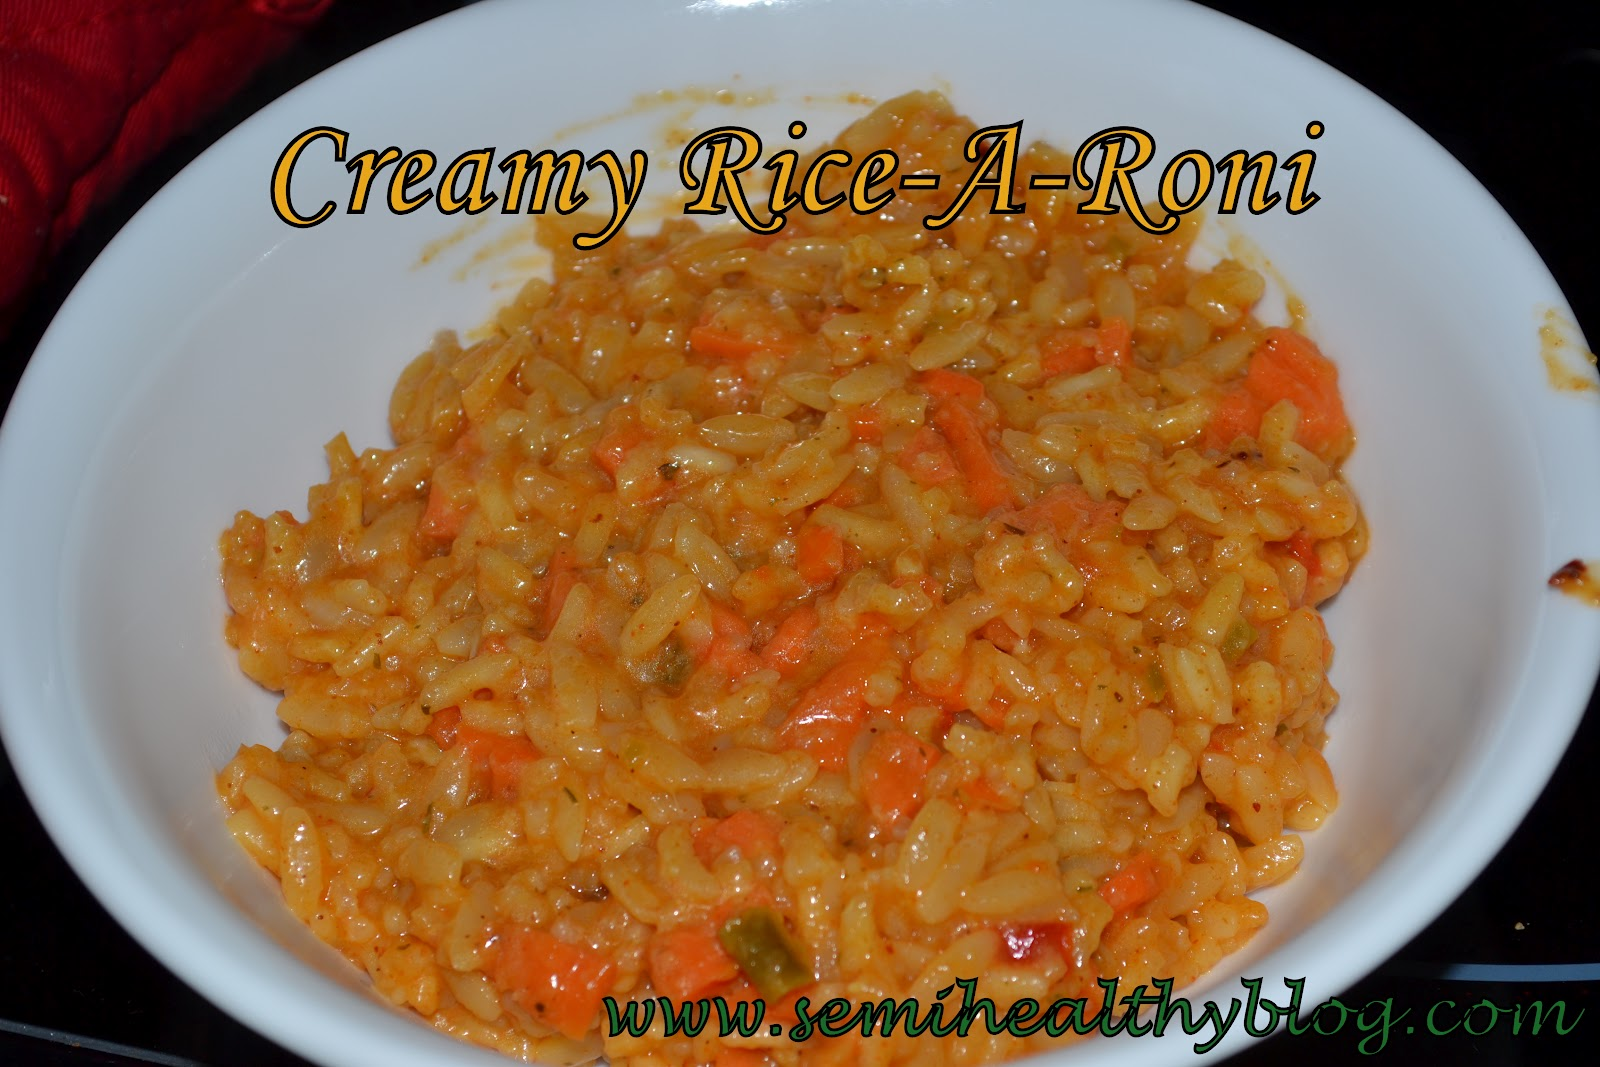 Leftover Idea: Fried Rice-A-Roni and Green Beans (serves 1)